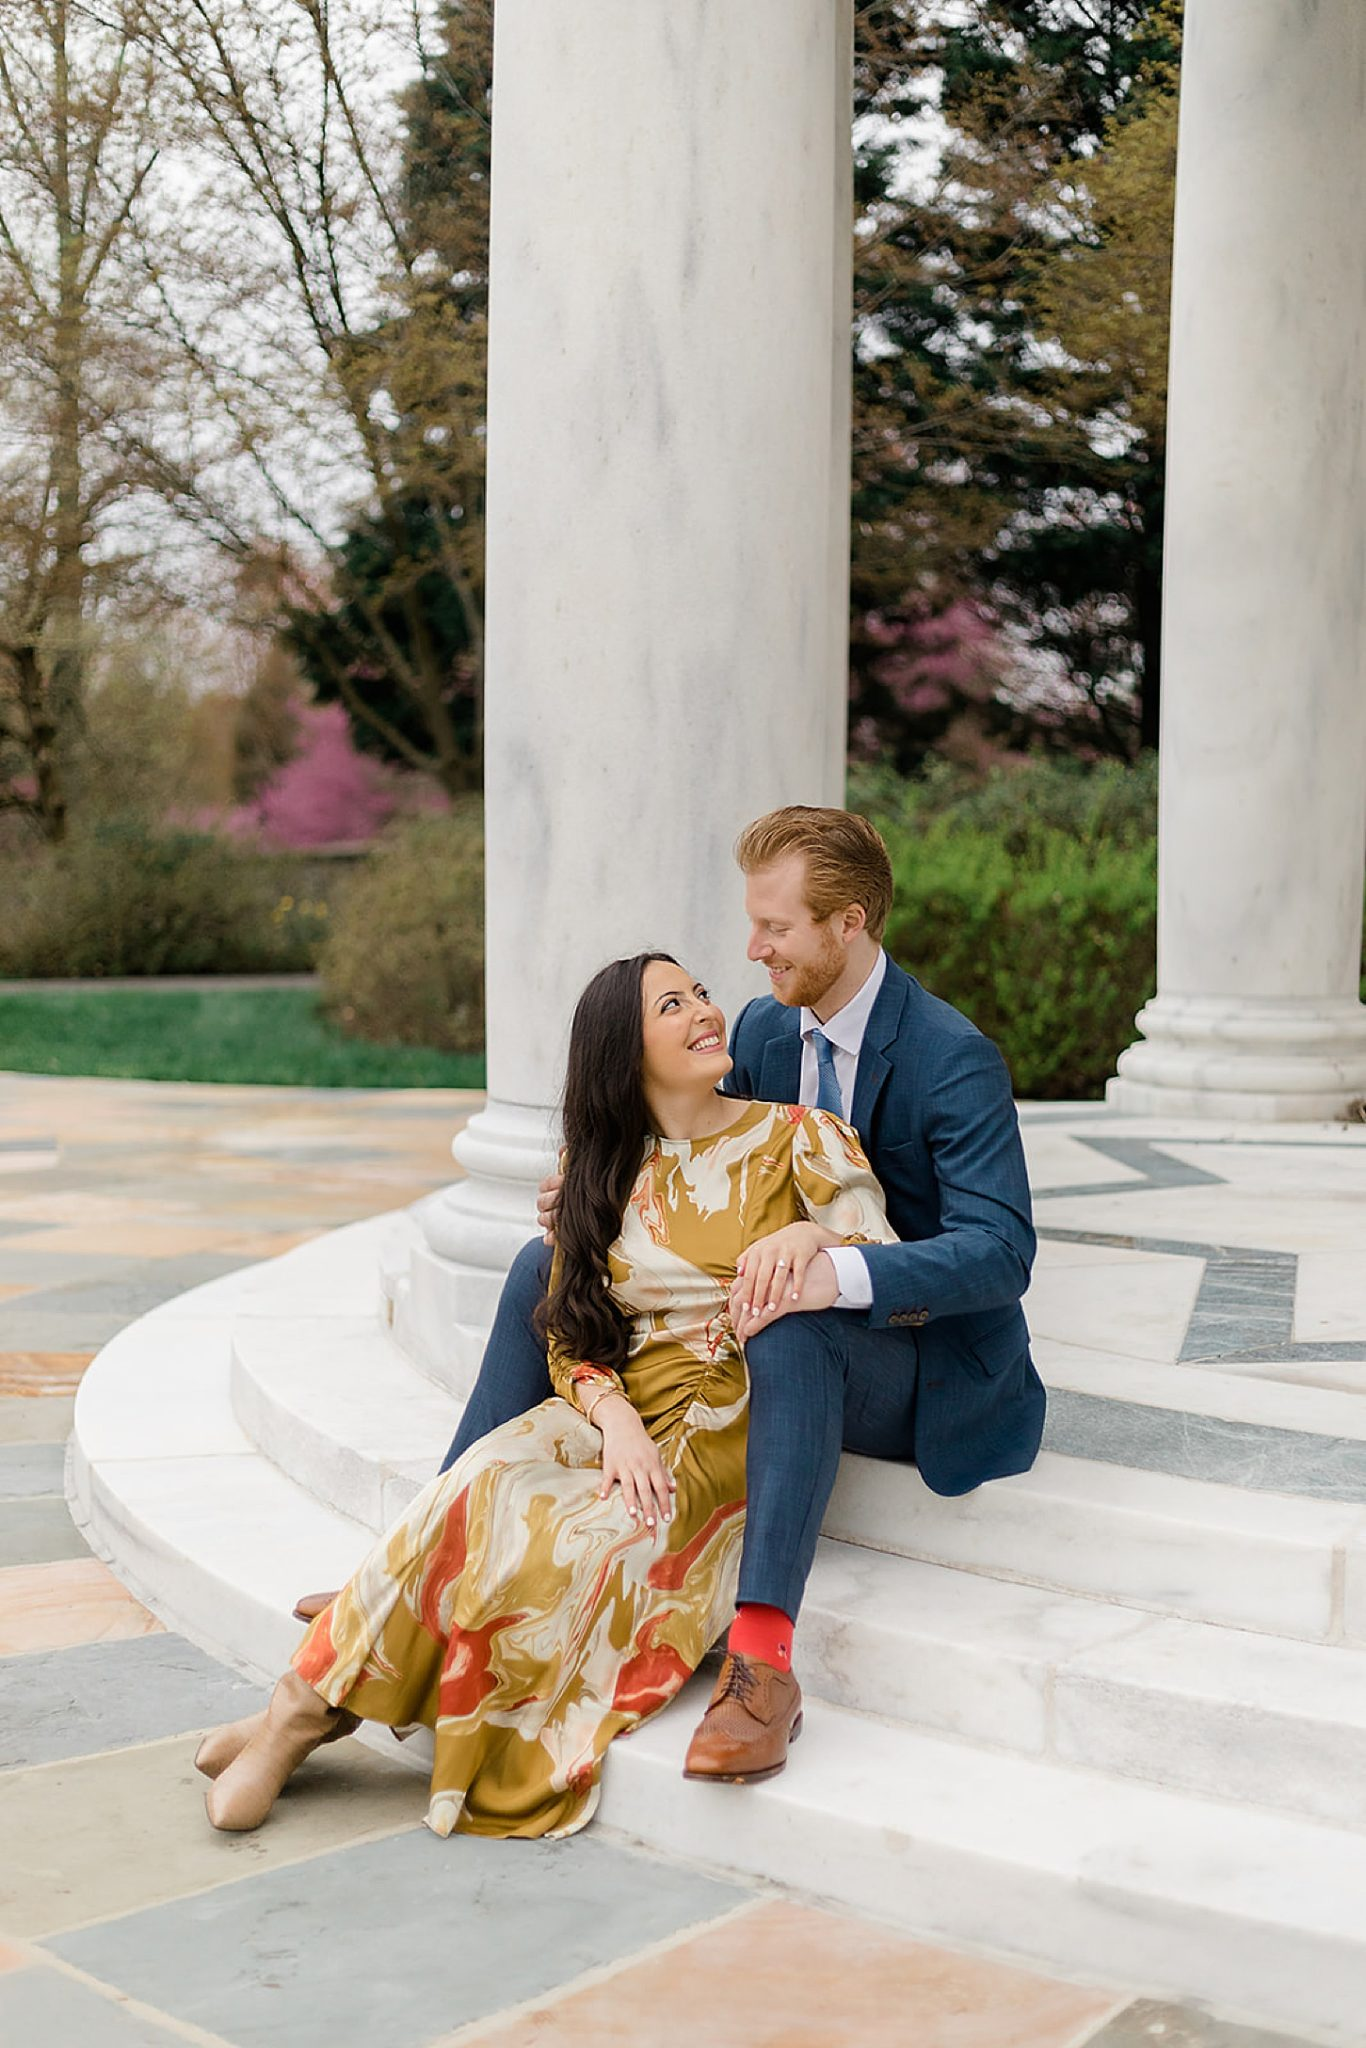 Alfred I. DuPont Hospital for Children Mansion Grounds Engagement Photography by Magdalena Studios 0002 scaled